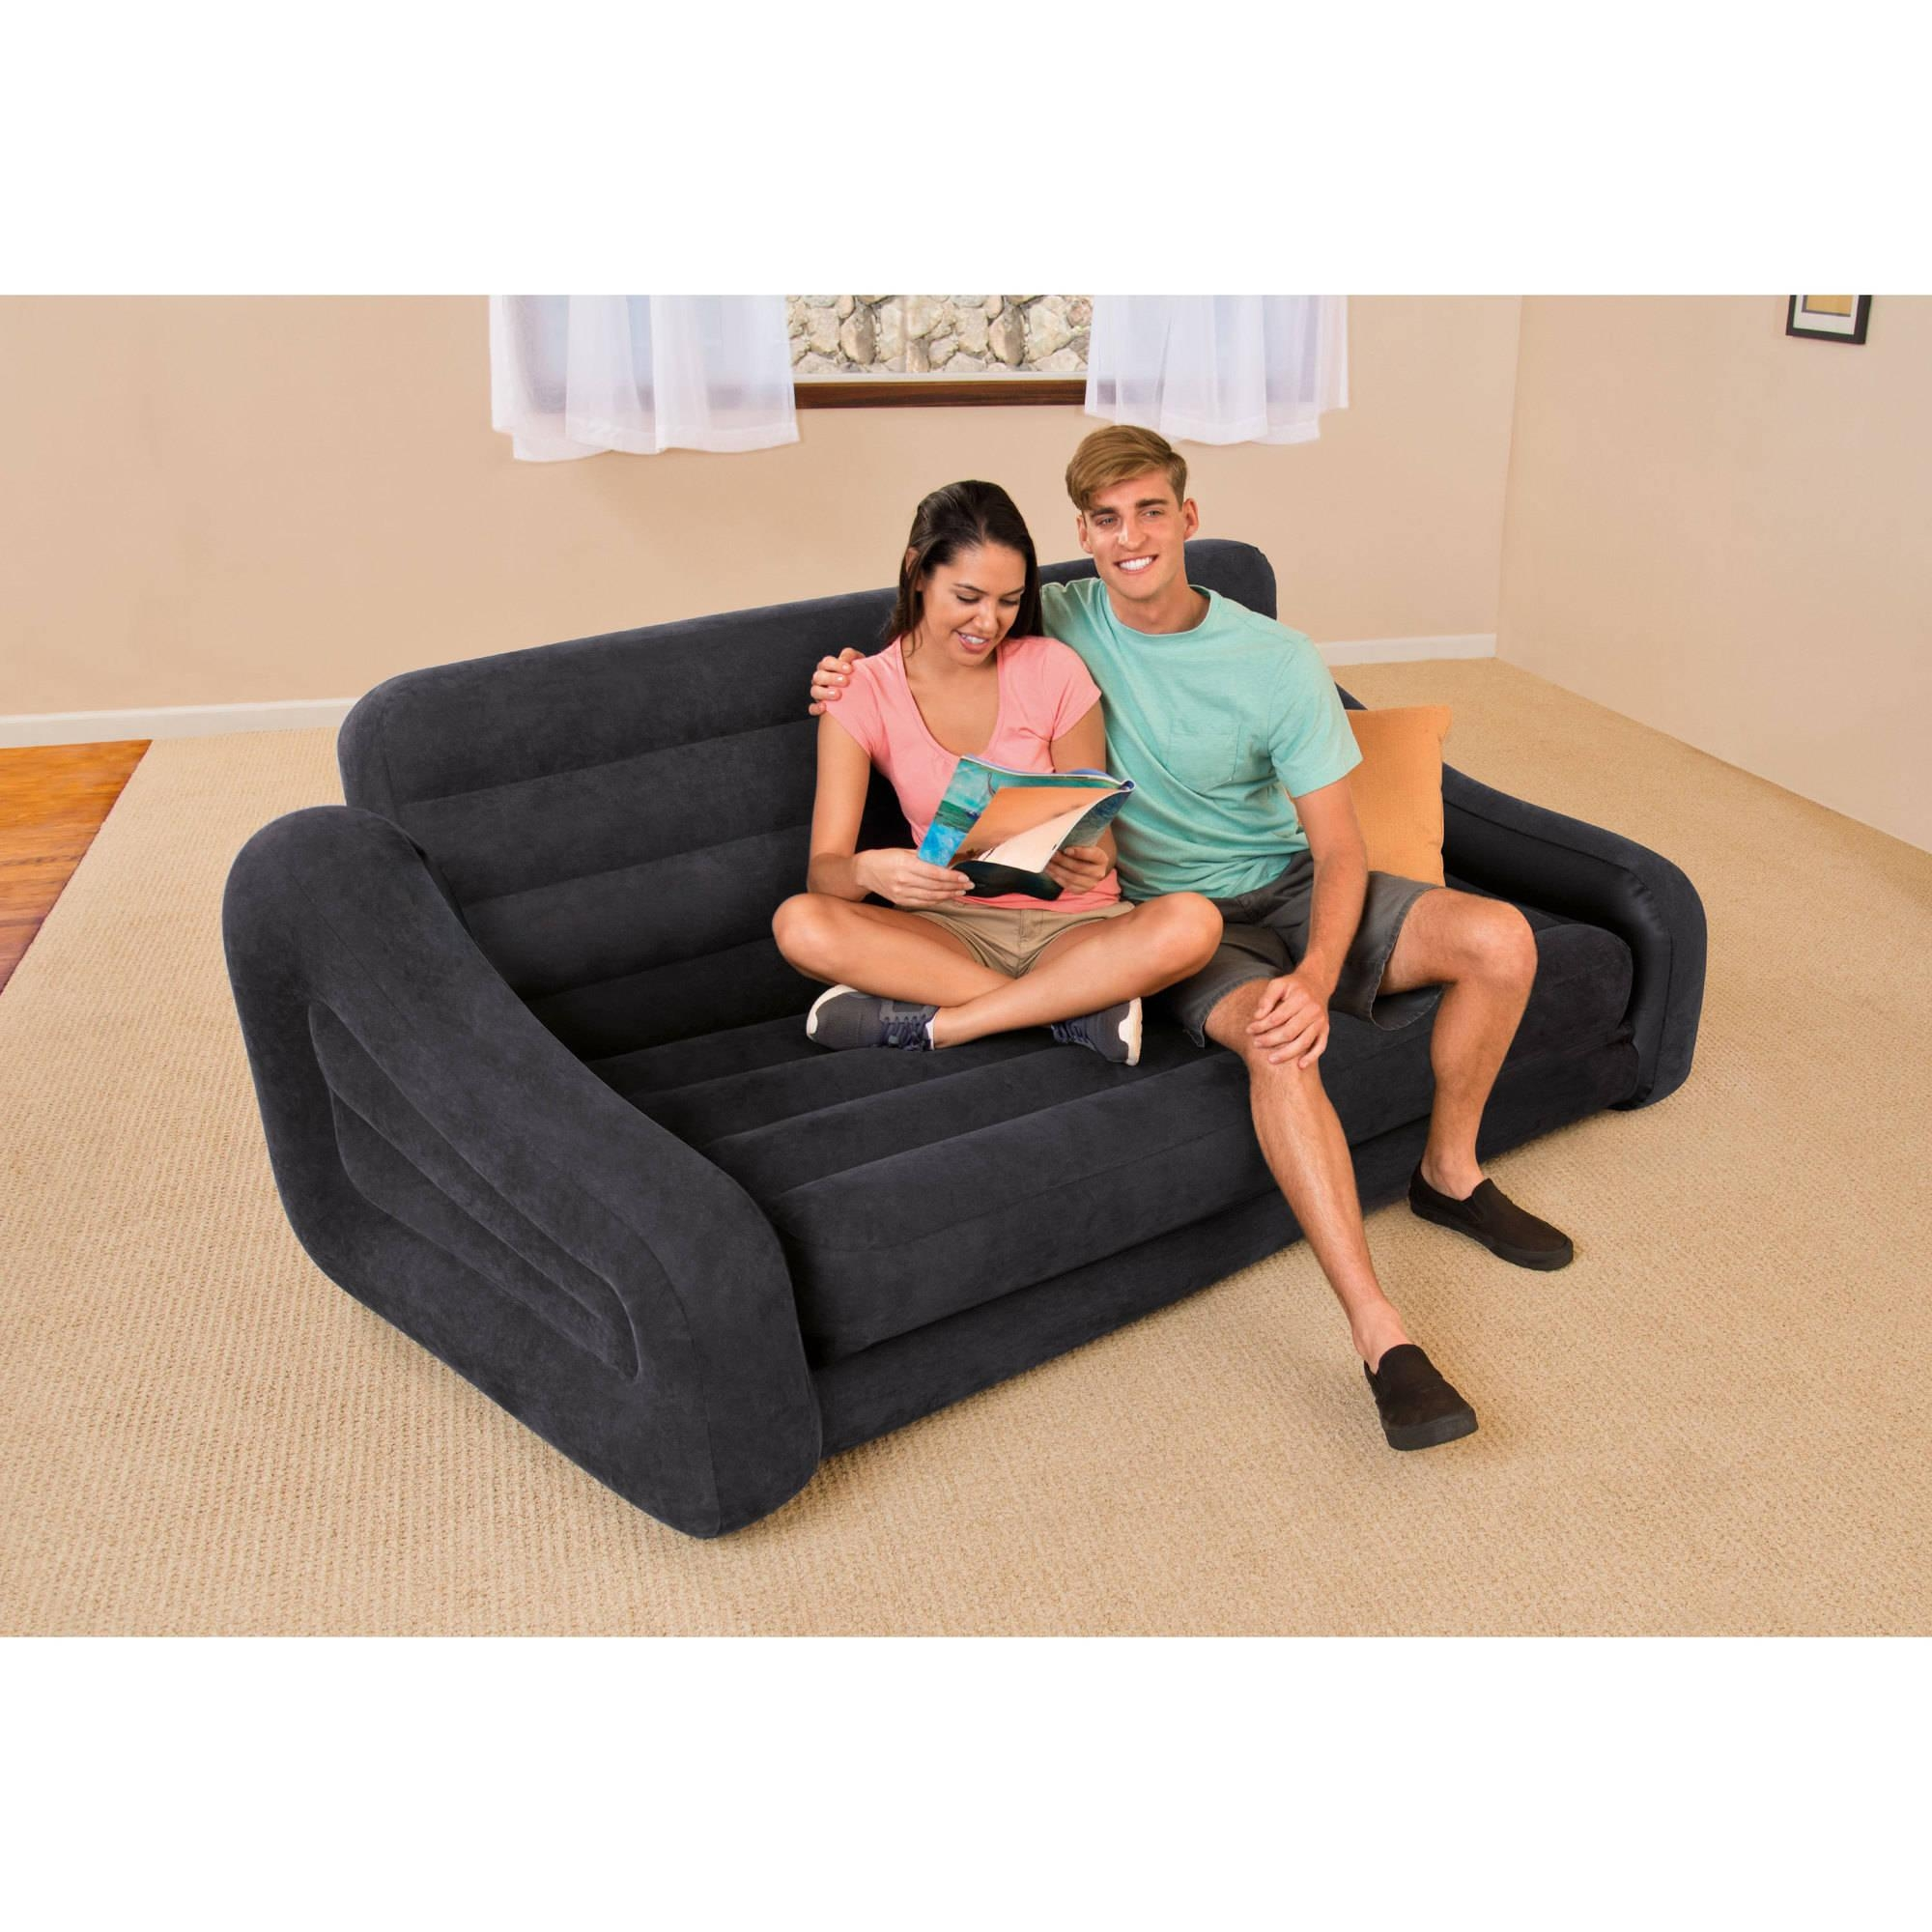 Intex Queen Inflatable Pull Out Sofa Bed – Walmart Inside Intex Queen Sleeper Sofas (View 2 of 20)